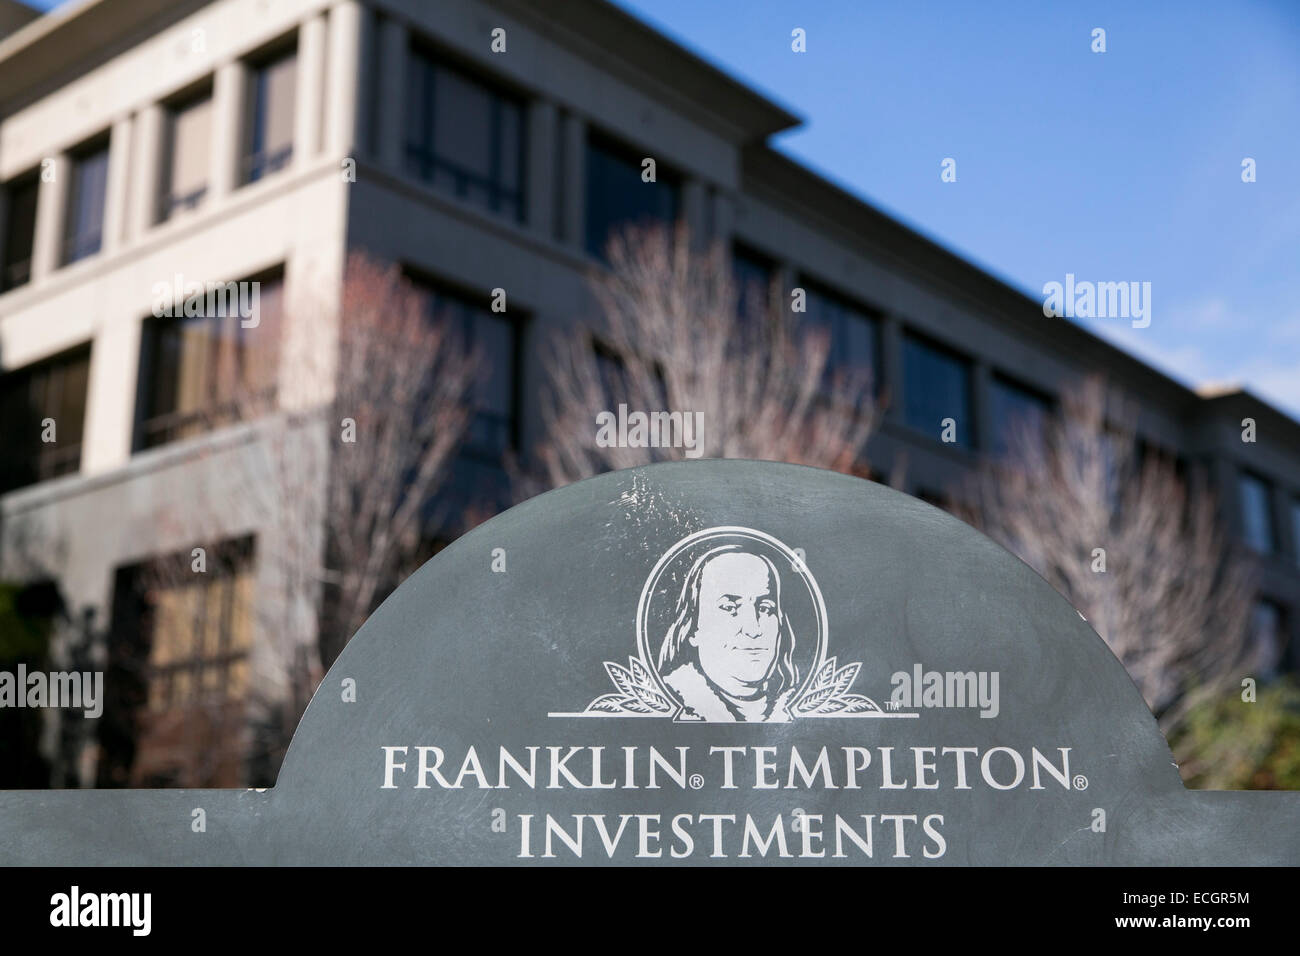 The headquarters of Franklin Templeton Investments. - Stock Image